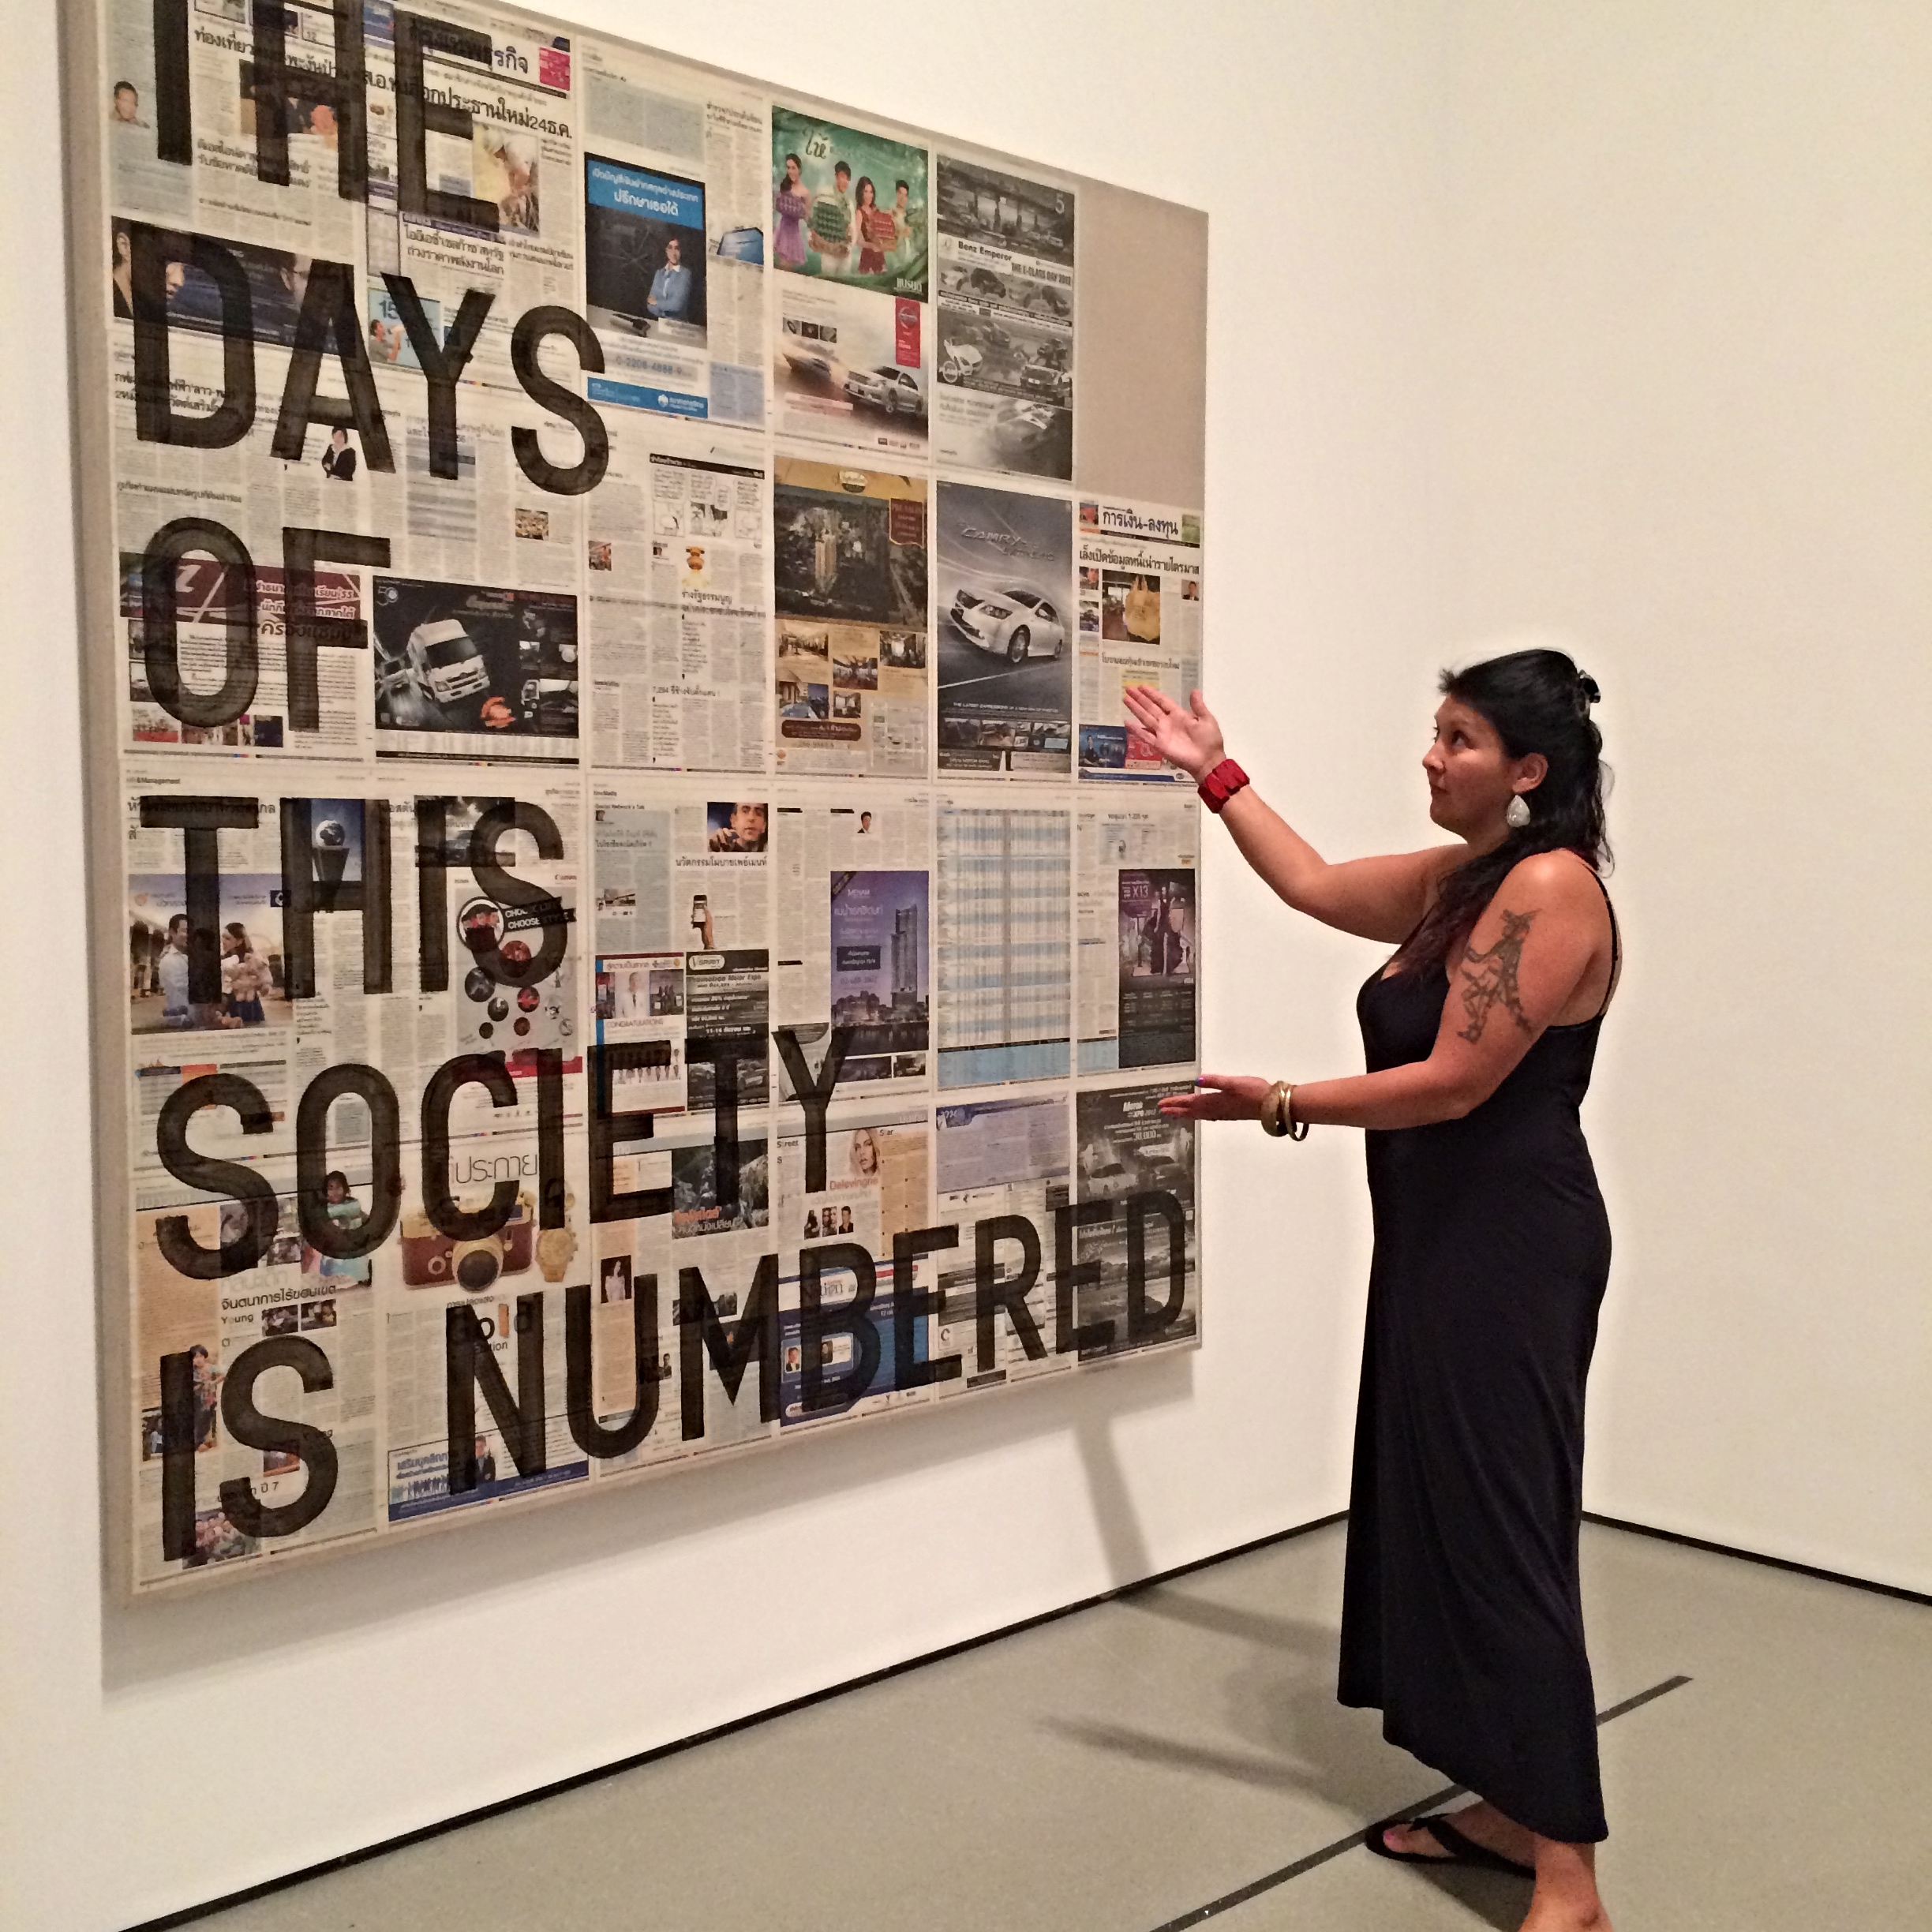 Roxanne presenting her assigned art work from MoMA,Rirkrit Tiravanija's The Days of This Society is Numbered (2014).